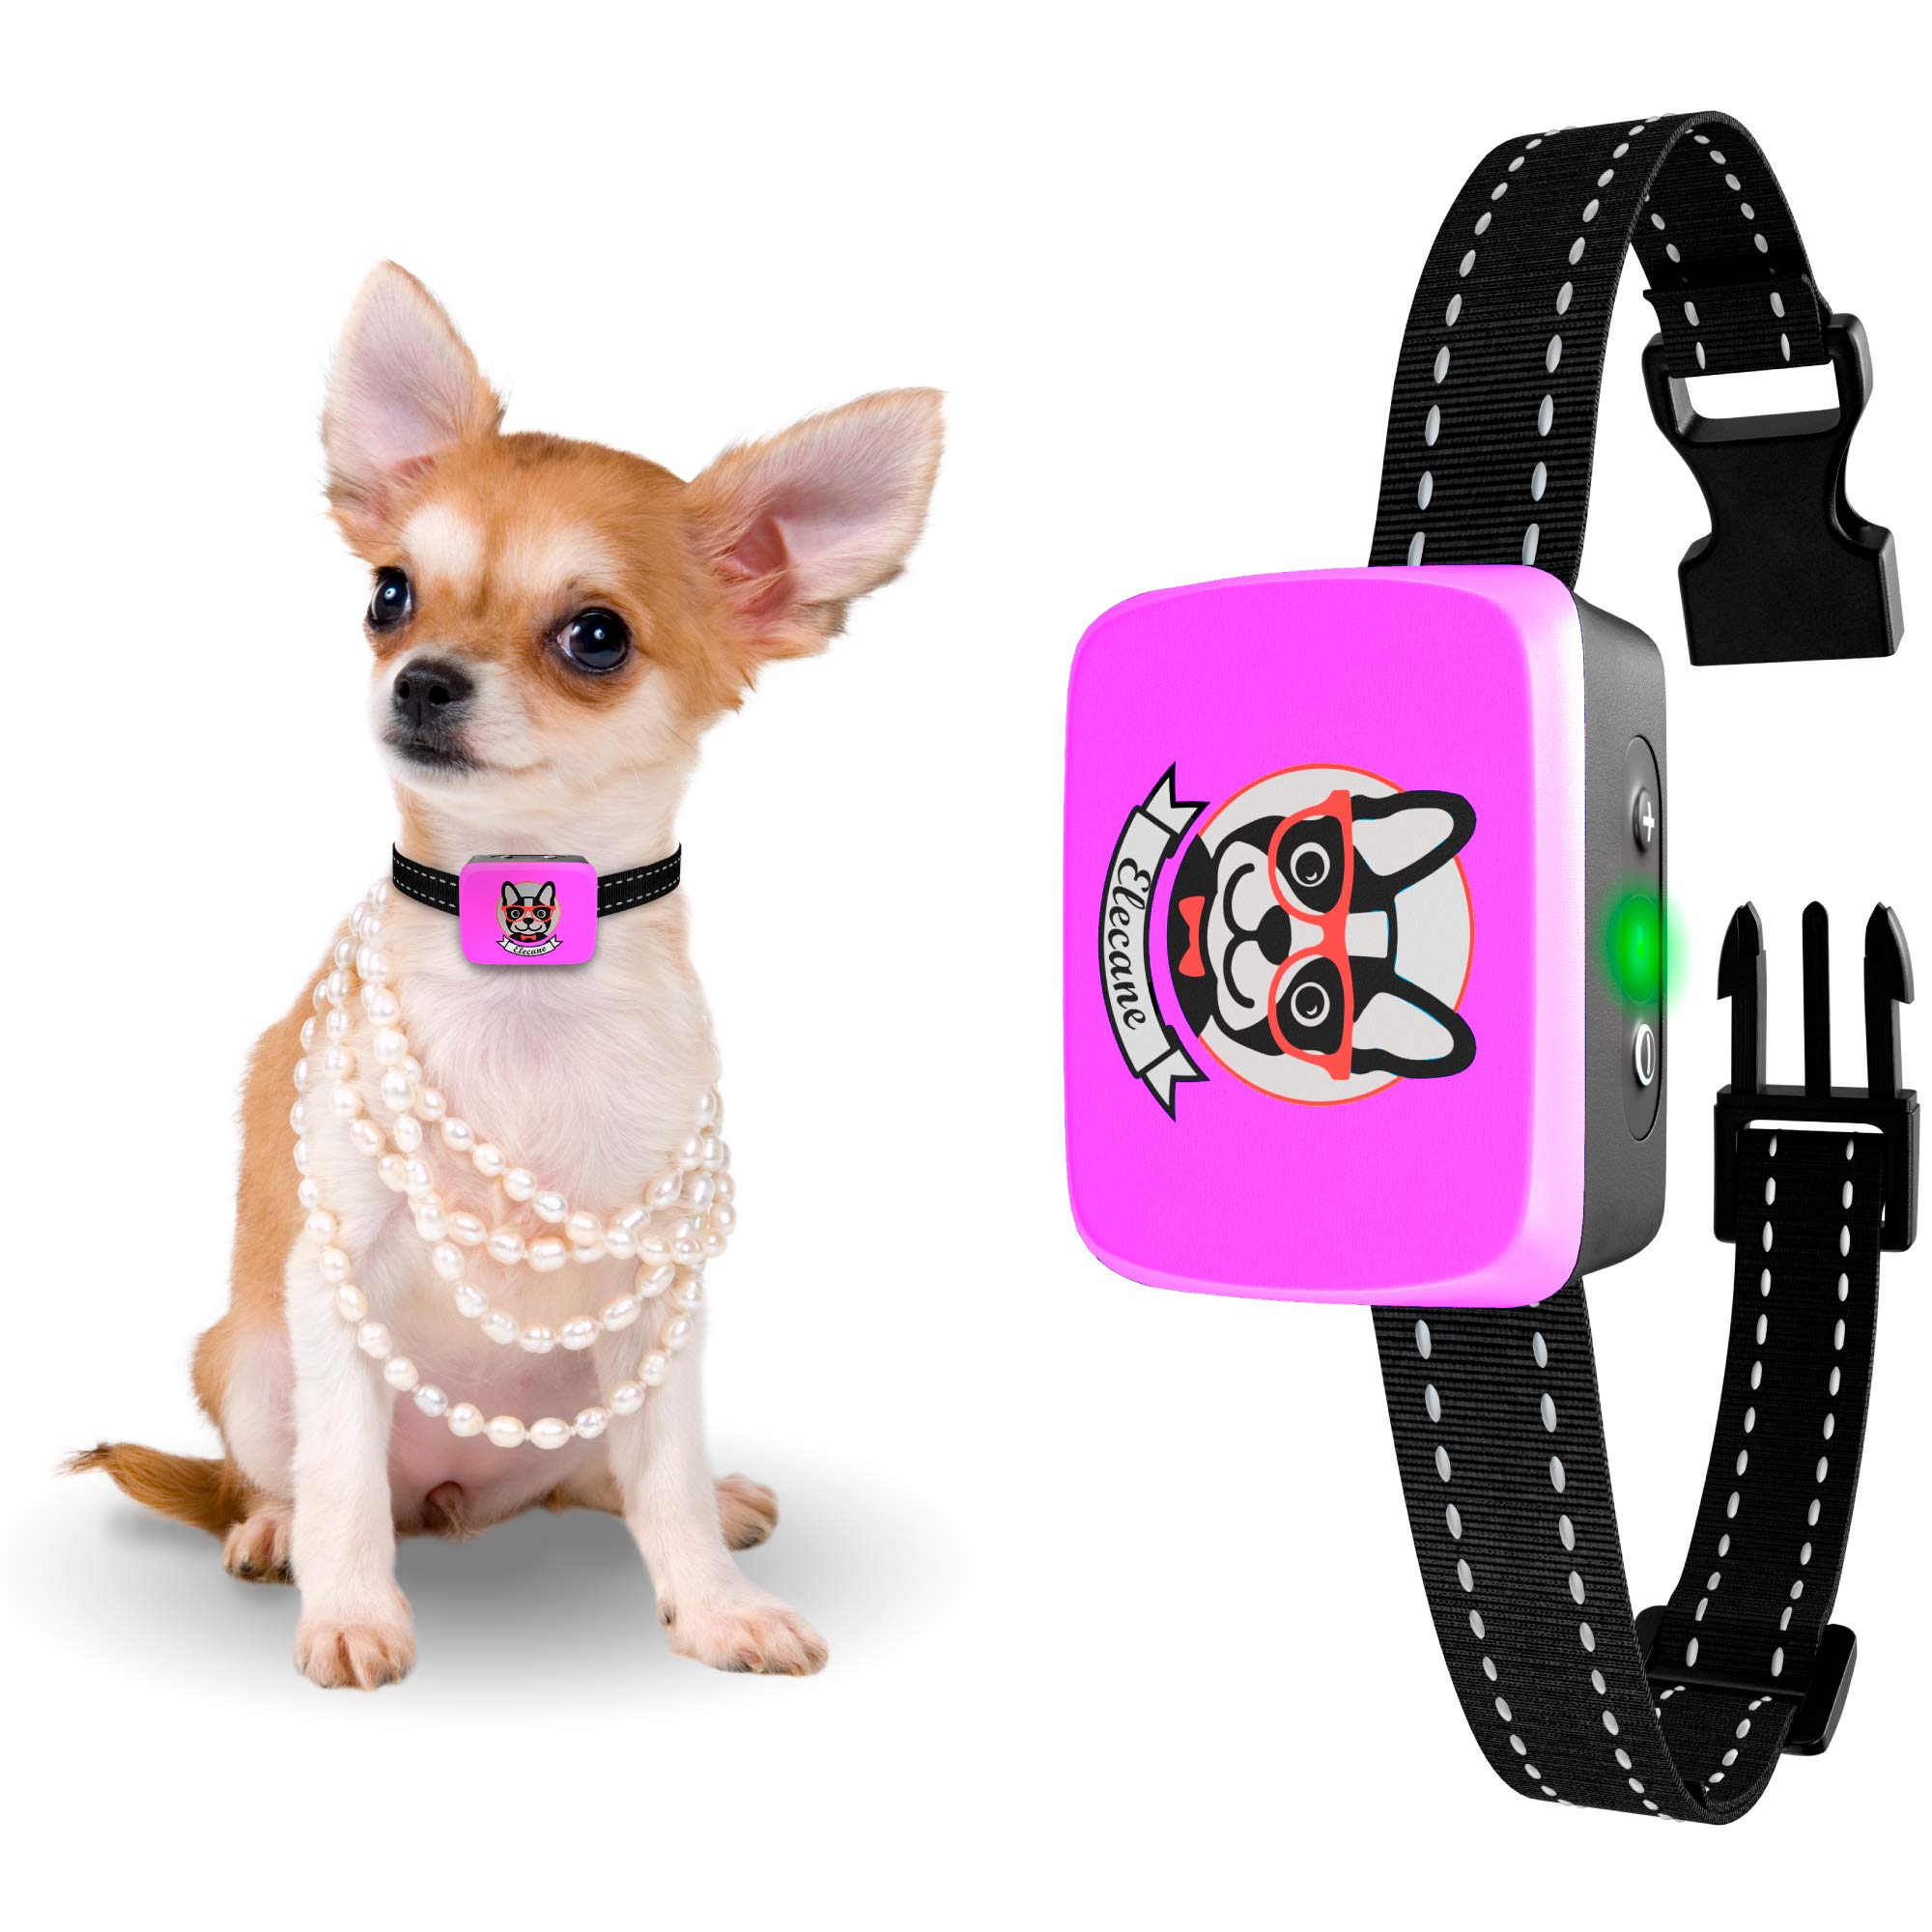 Small Dog Bark Collar Rechargeable - Anti Barking Collar For Small Dogs - Smallest Most Humane Stop Barking Collar - Dog Training No Shock Bark Collar Waterproof - Safe Pet Bark Control Device by ELECANE